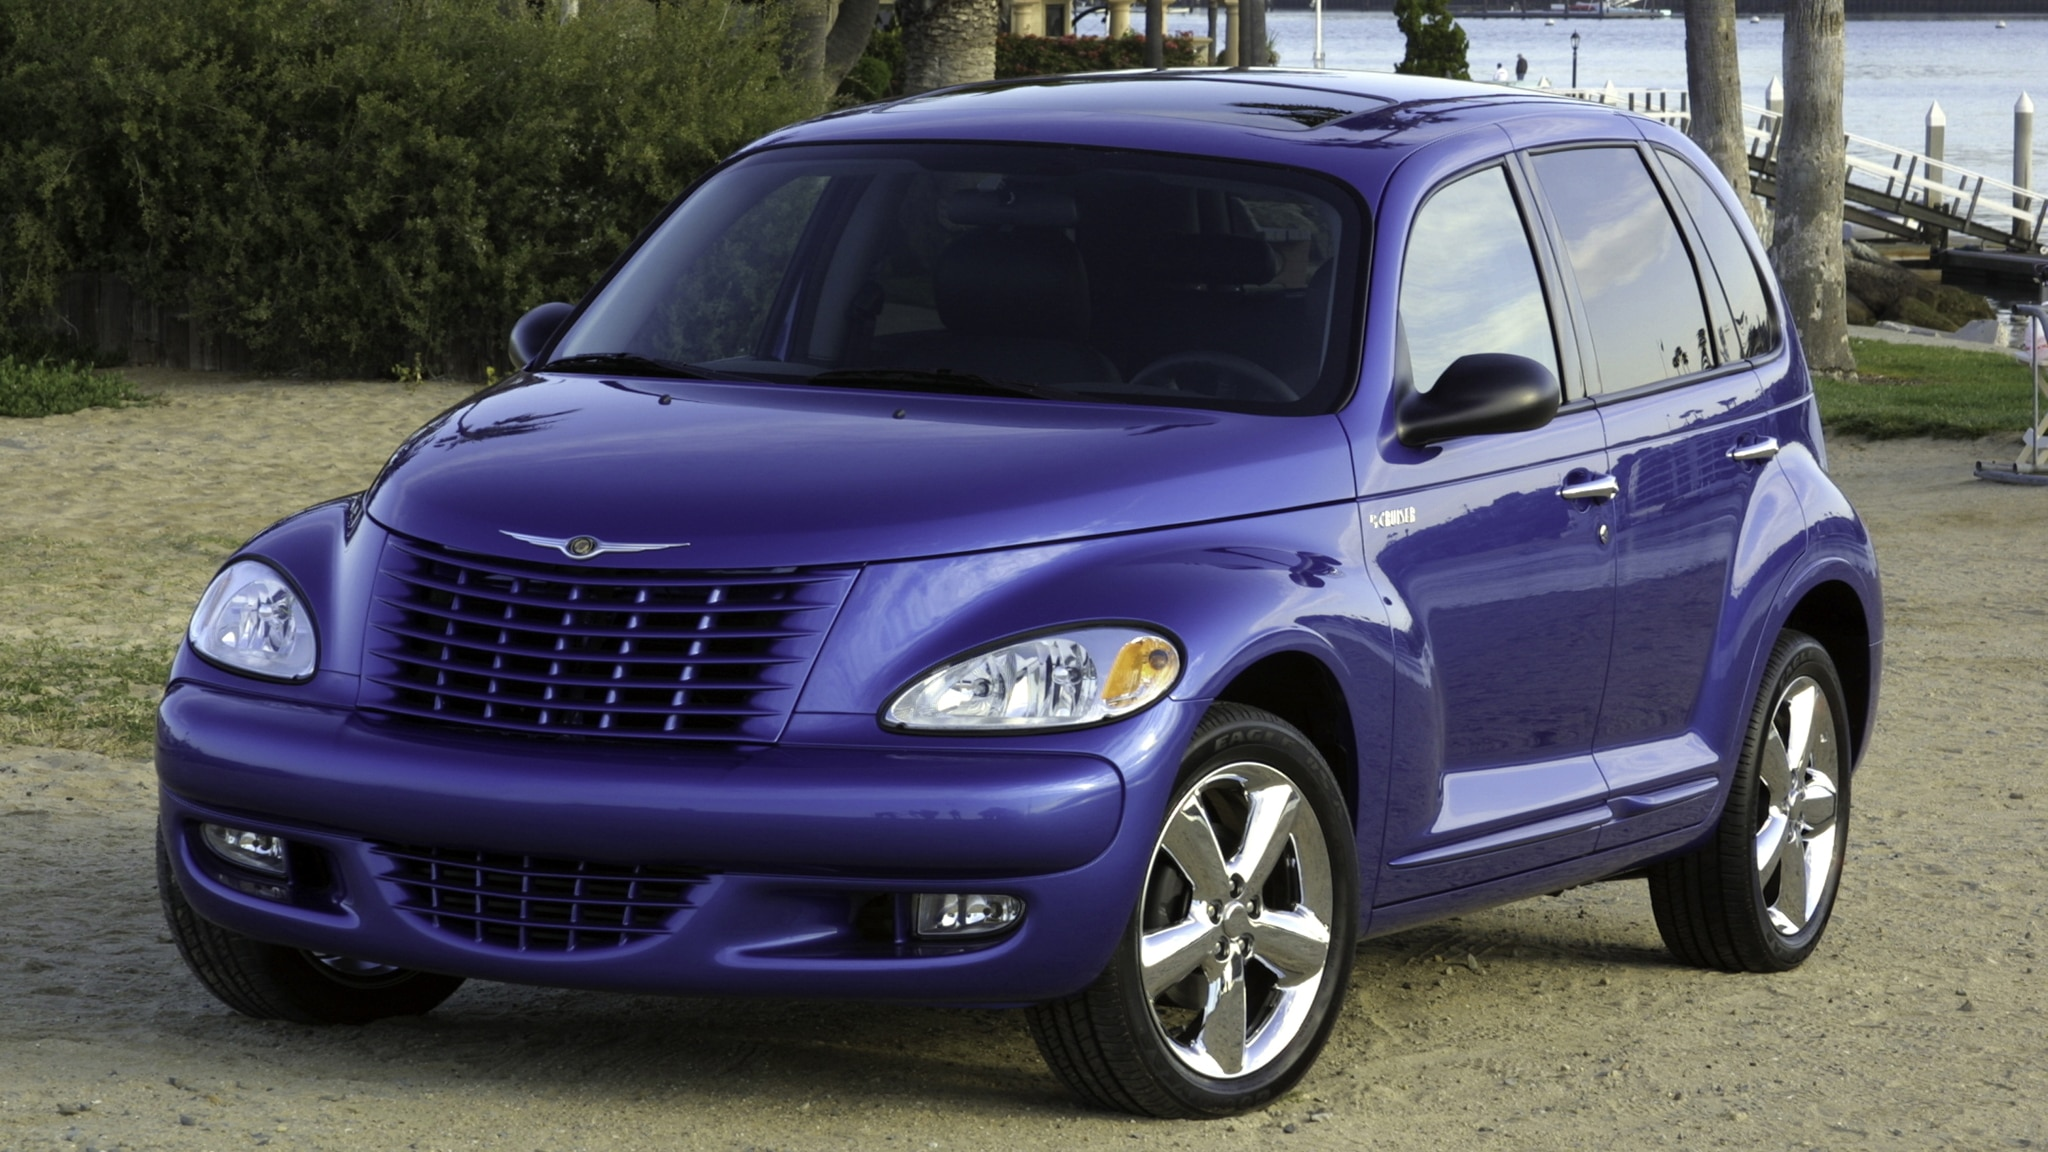 Chrysler Pt Cruiser History Buying Tips Auctions Photos And More